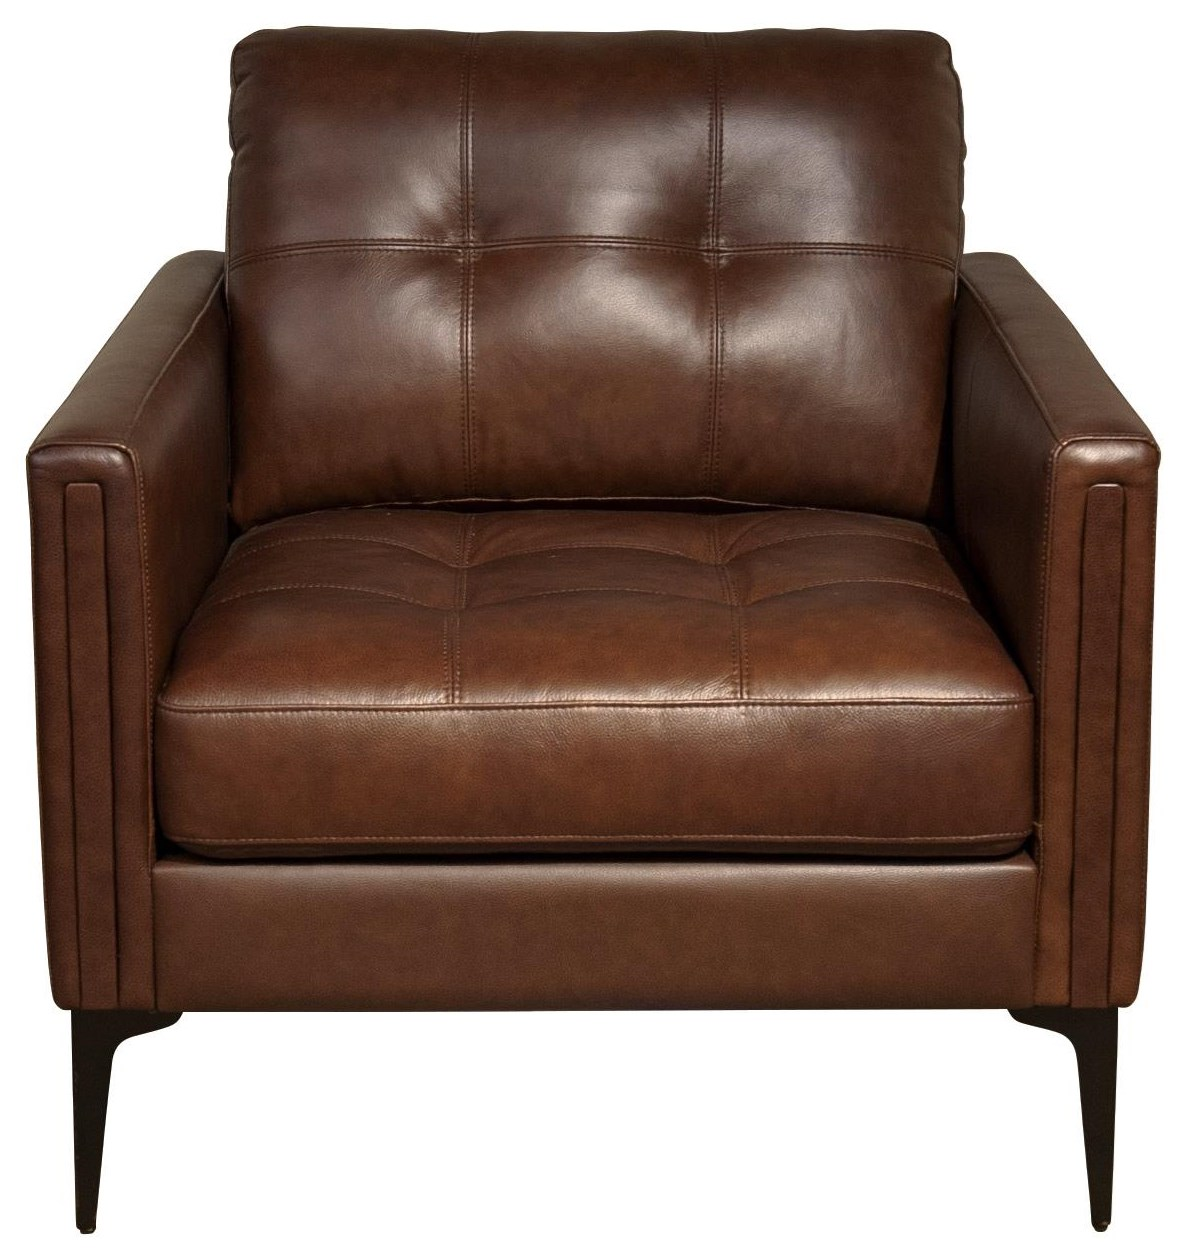 Murphey Murphey Leather Chair by Abbyson at Morris Home